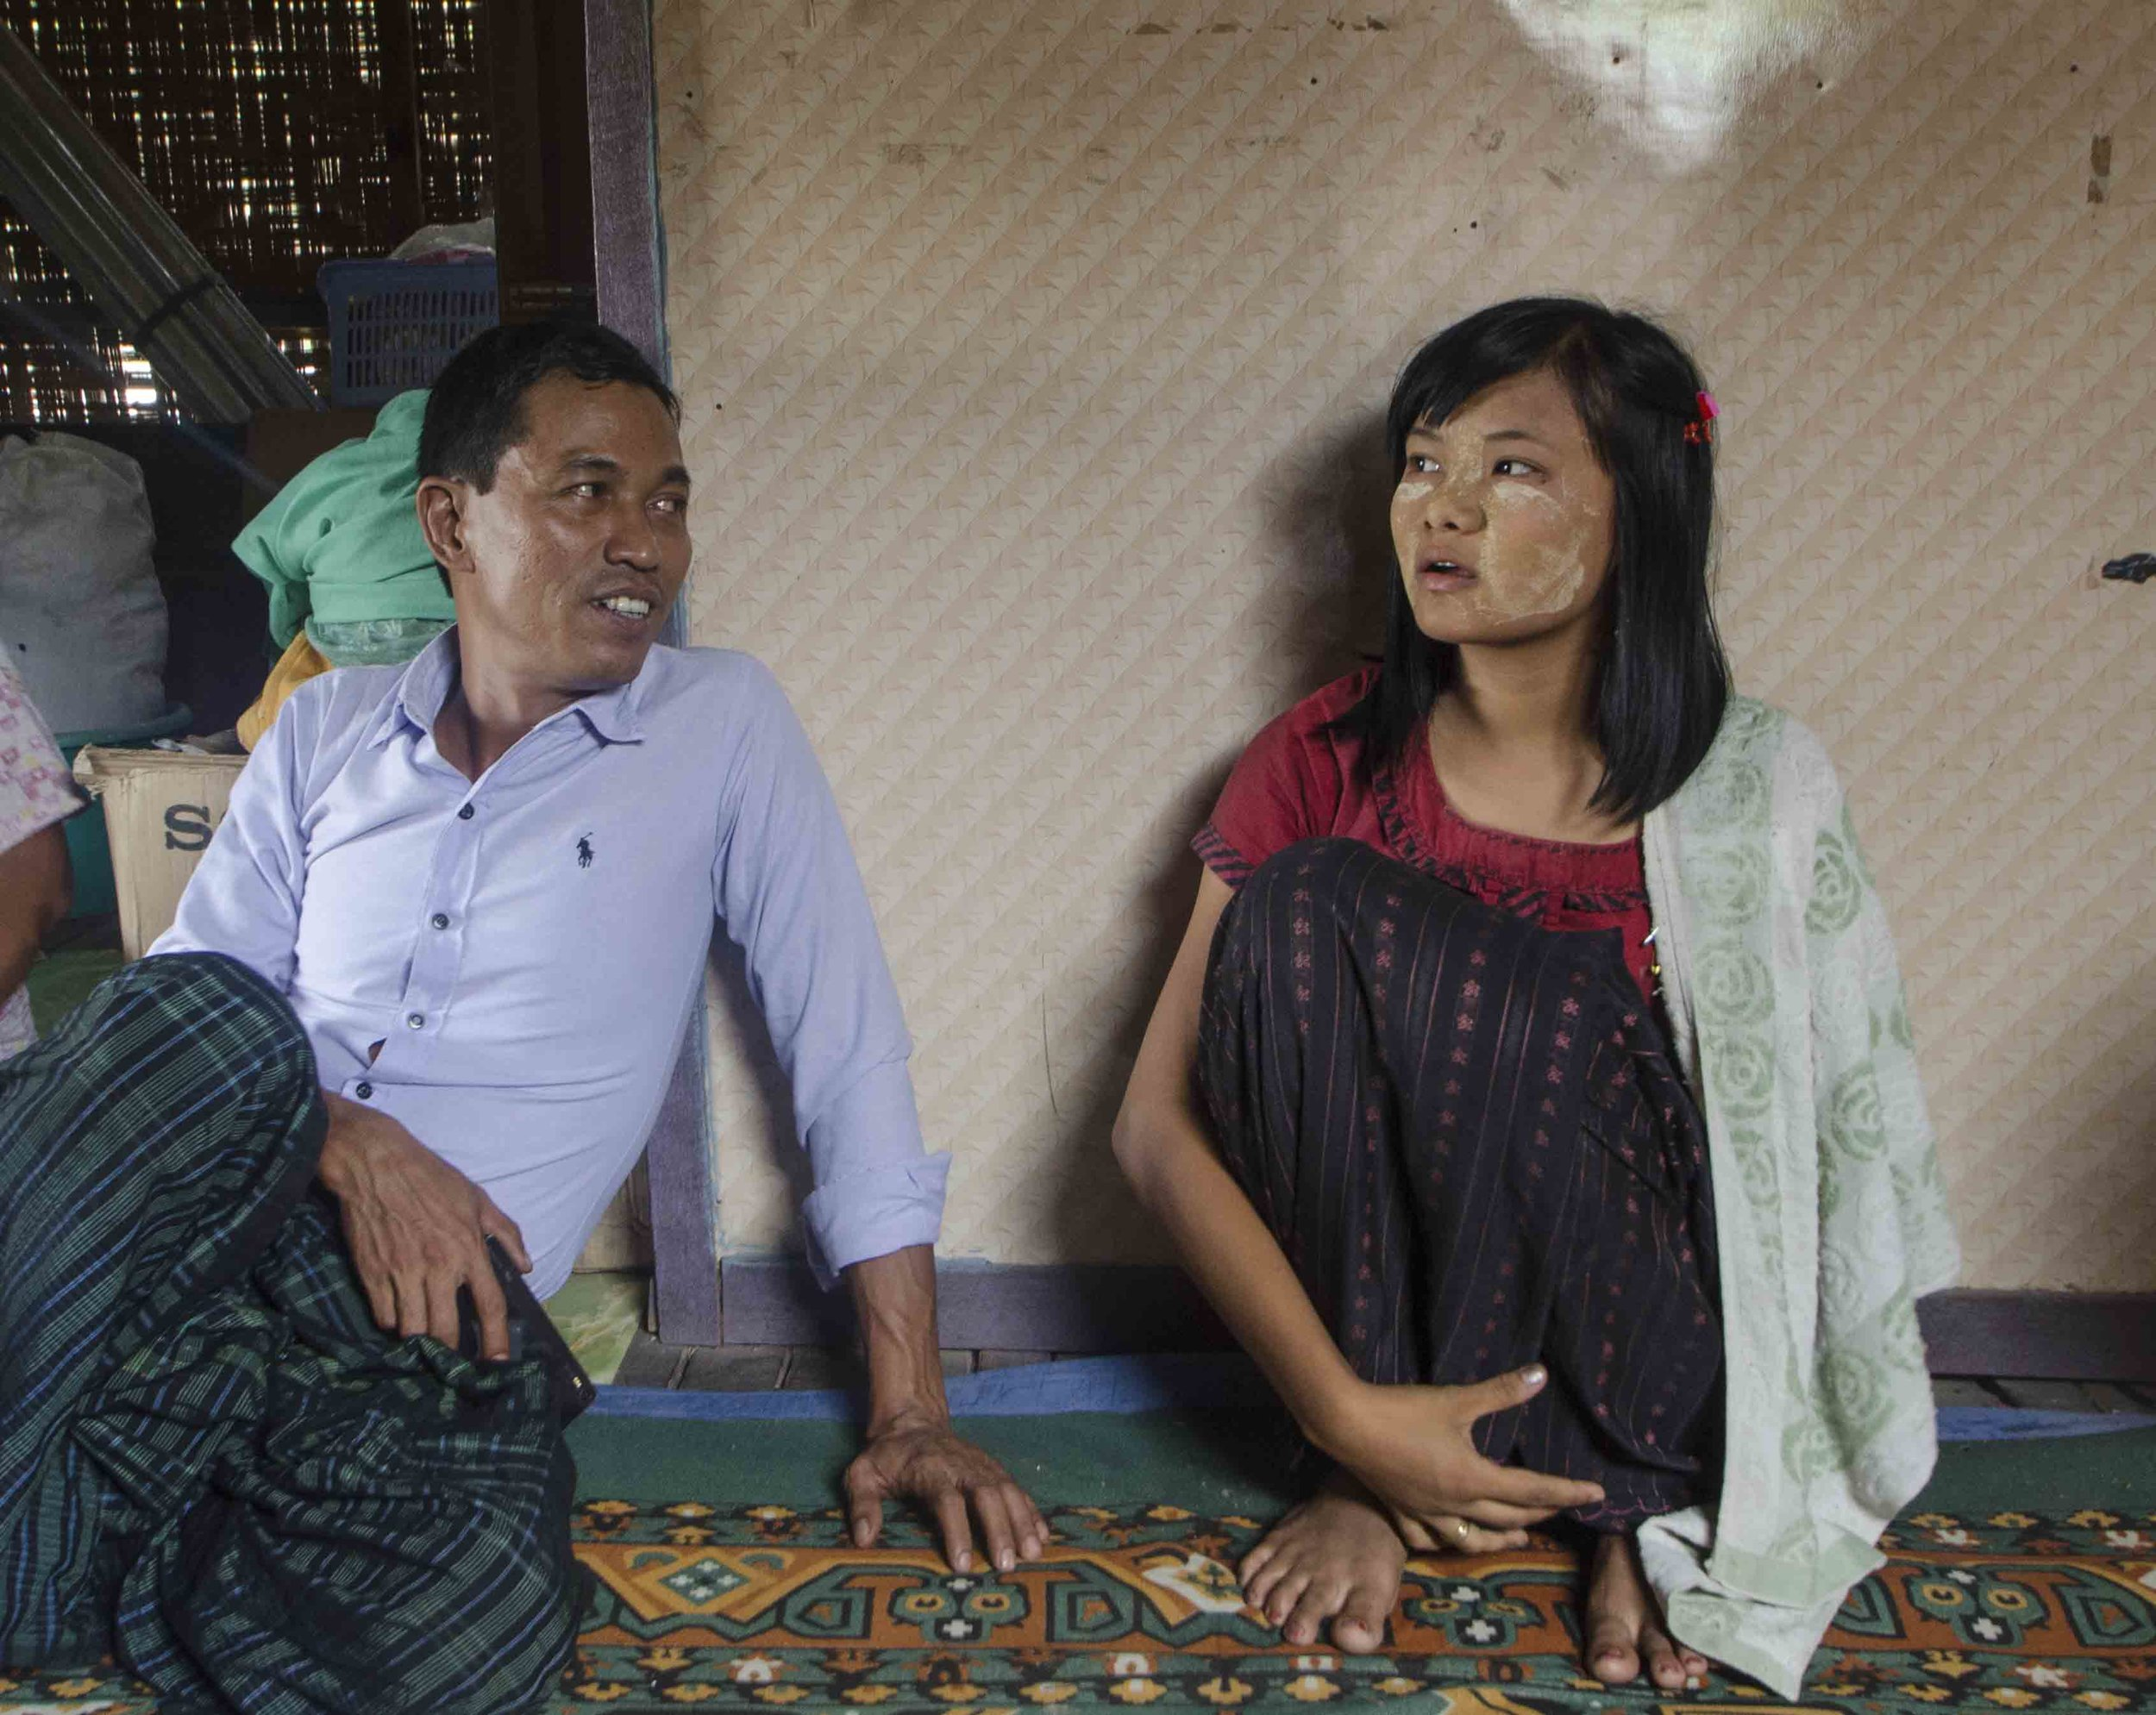 Ko Taw, left, is determined to fight for workers rights in Myanmar. Zin Mar Htwe, right, lost her arm in an hydraulic press while working at a steel factory [Charles Michio Turner/Al Jazeera]